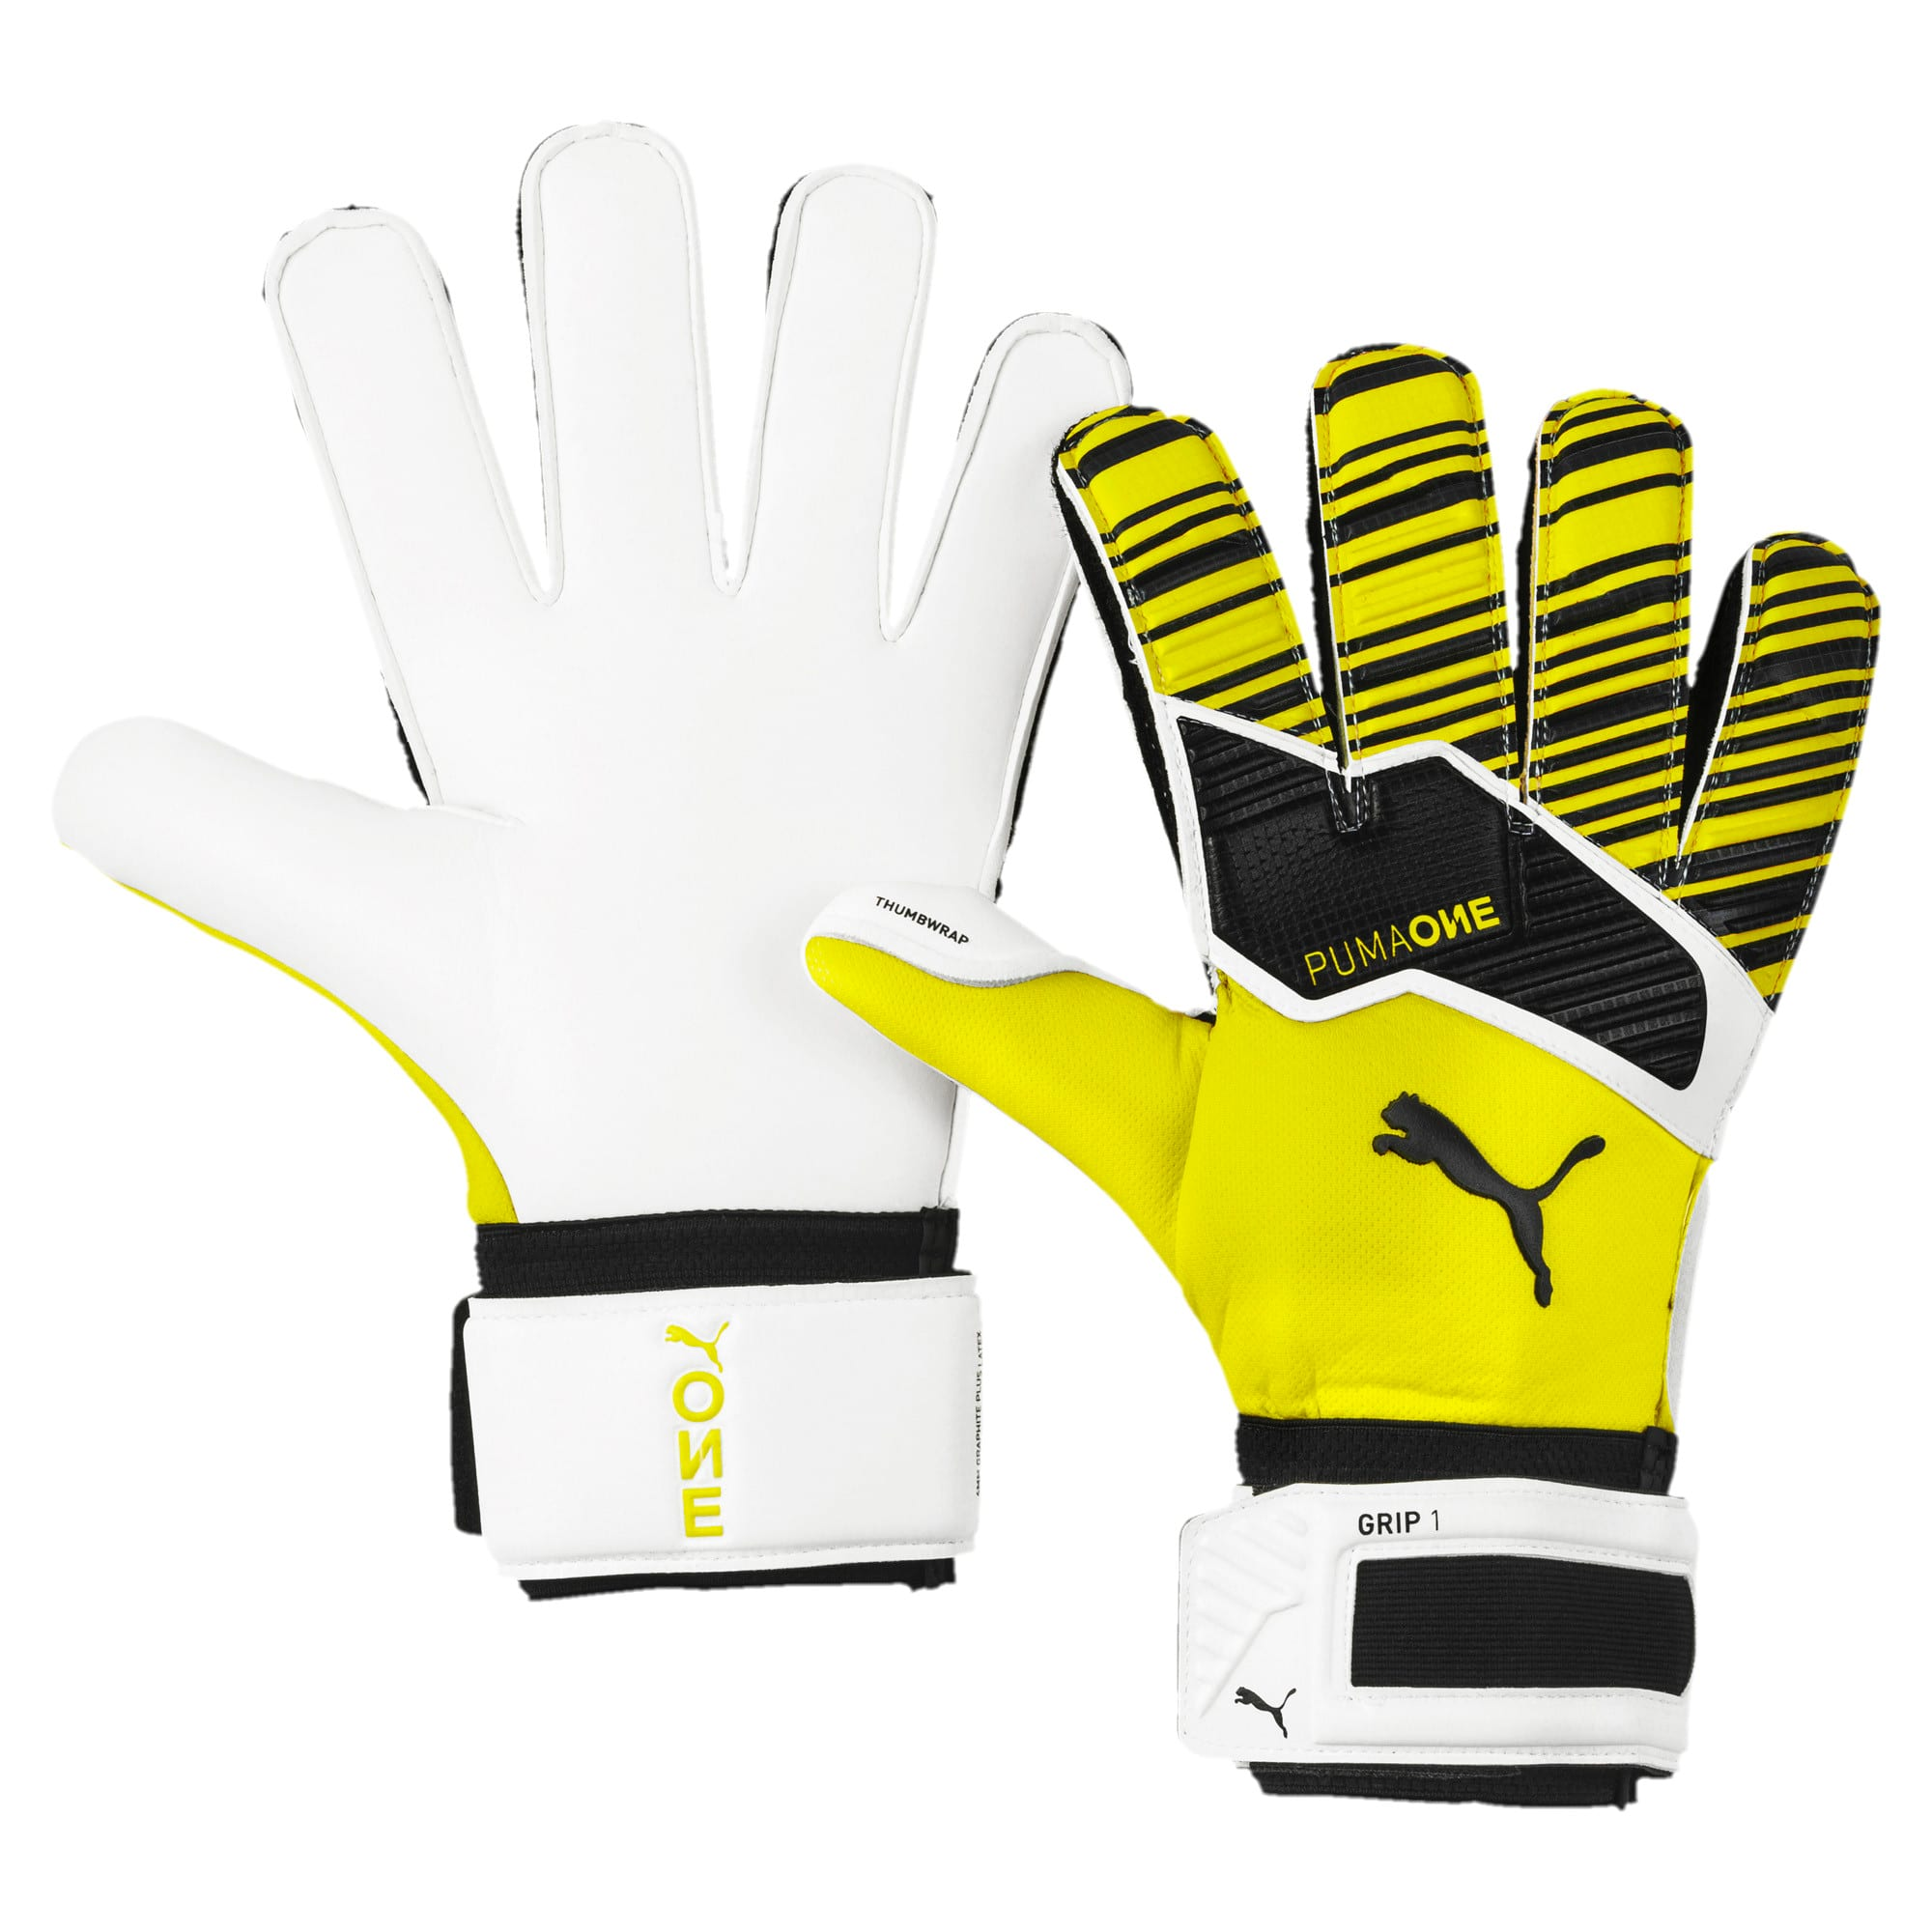 PUMA One Grip 1 RC Football Goalkeeper Gloves, Yellow Alert-Black-White, large